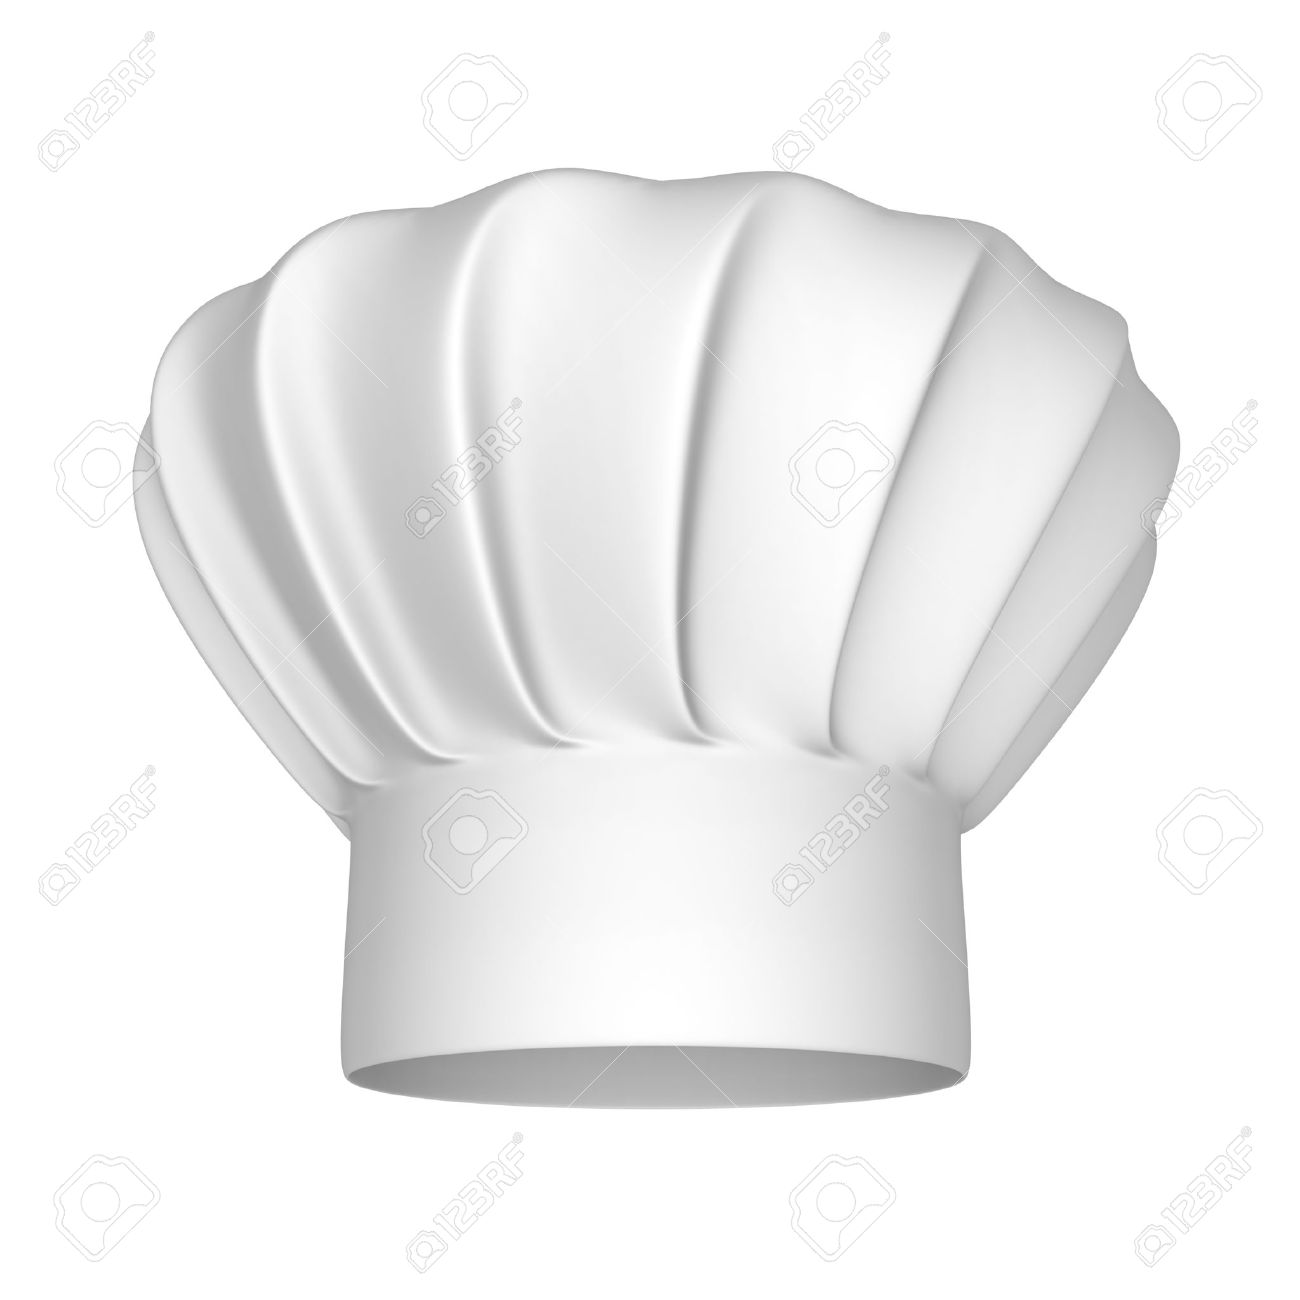 Chef hat - isolated on a white background - 17106438